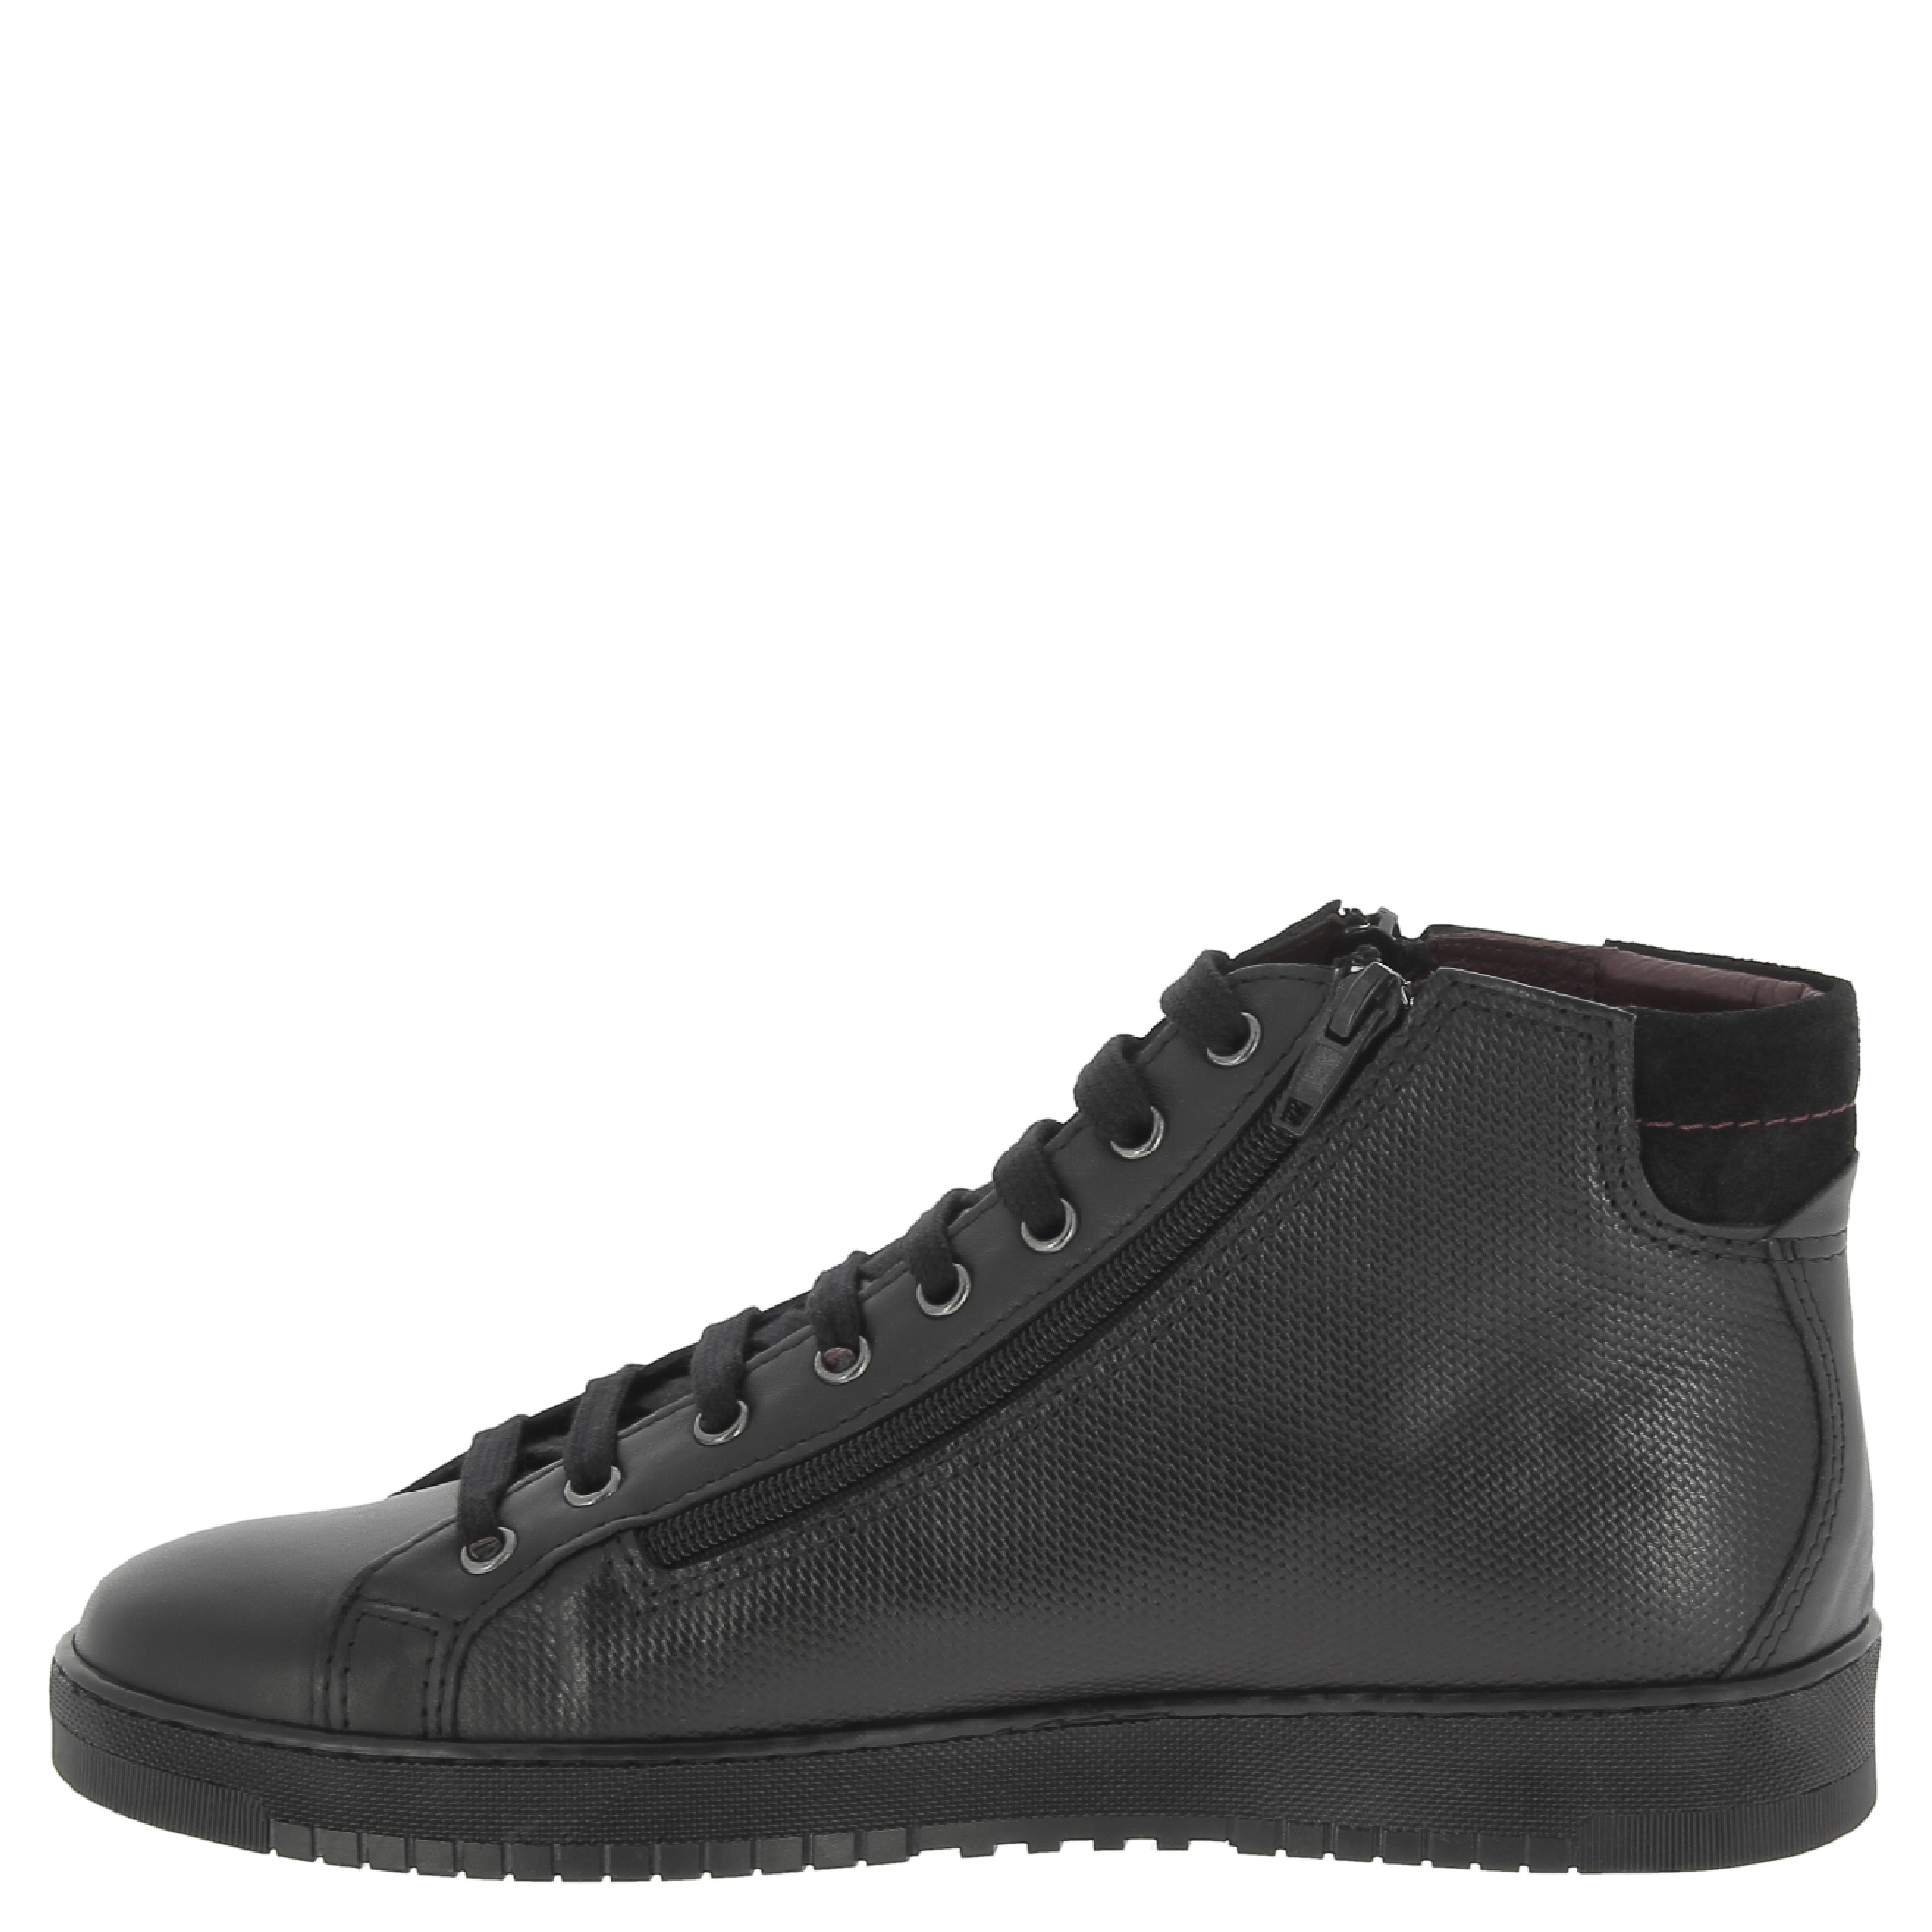 Nikolas-men-039-s-hi-top-trainers-in-black-Calf-leather-with-suede-ankle-detail thumbnail 9